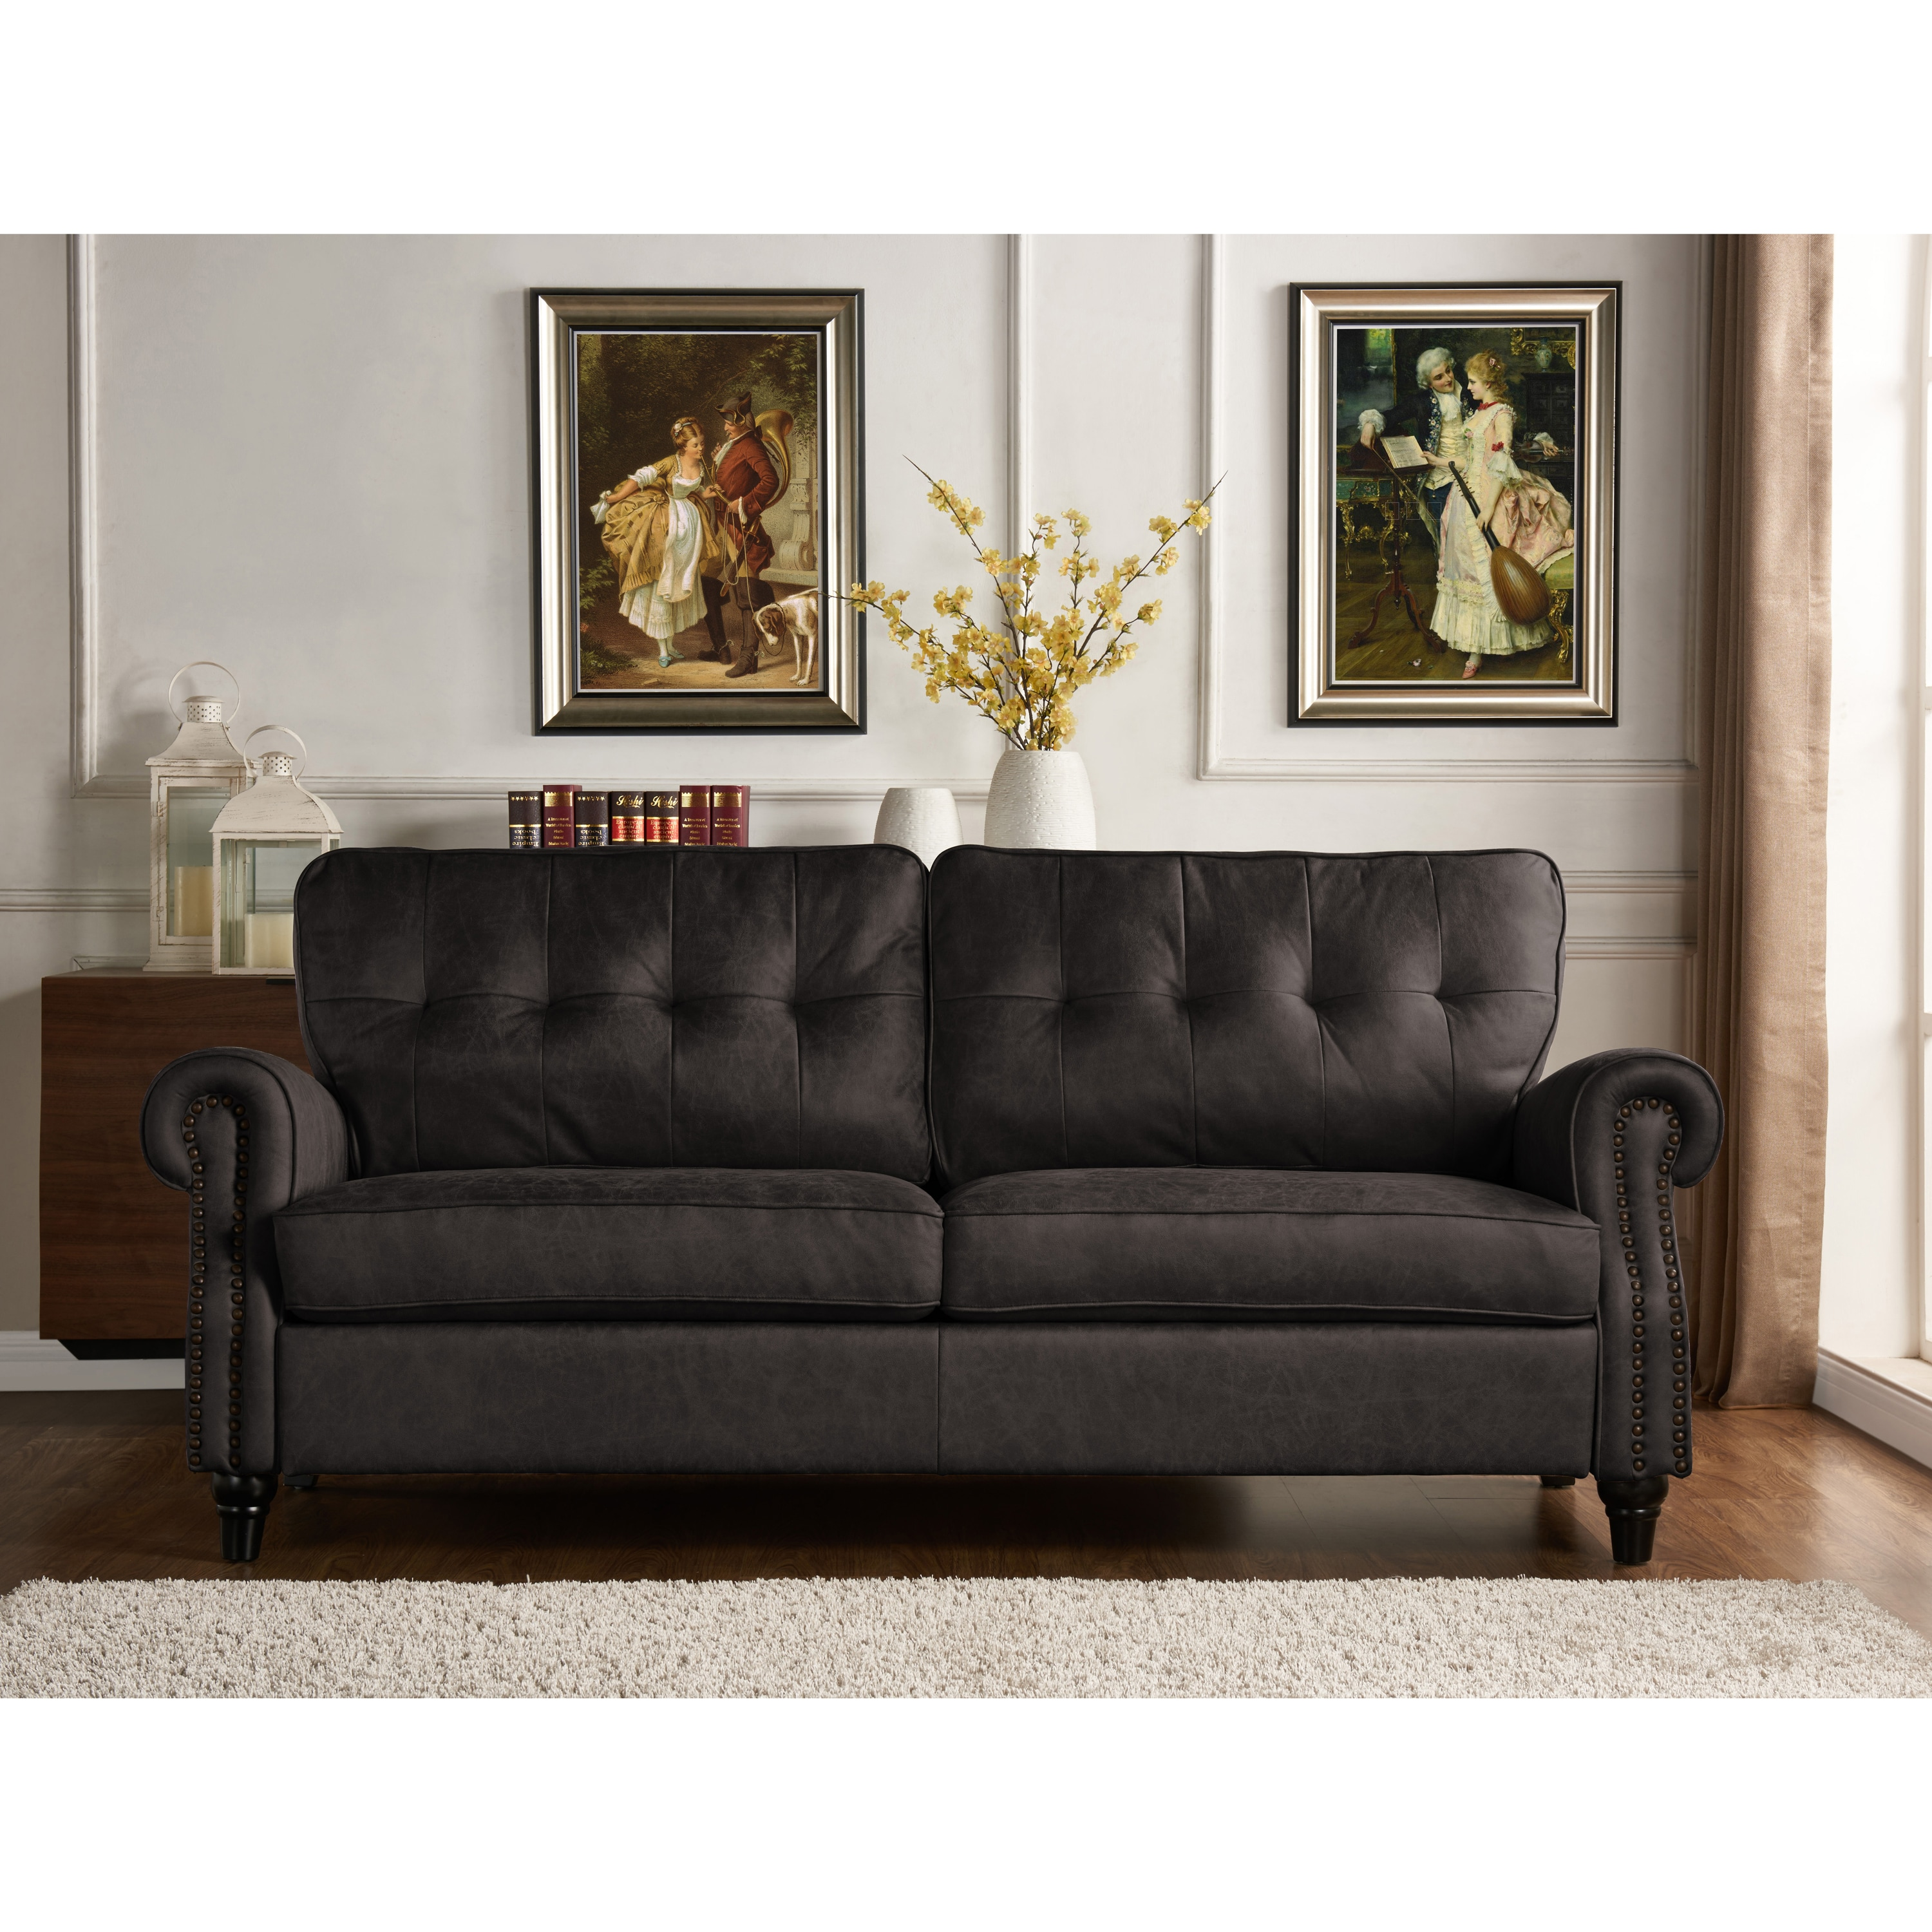 Picture of: Grey Three Seater Sofa Bed In Brown Or Grey Air Leather Distressed Finish Faux Leather Couch Settee With Wood Detail Legs Sofas Couches Home Kitchen